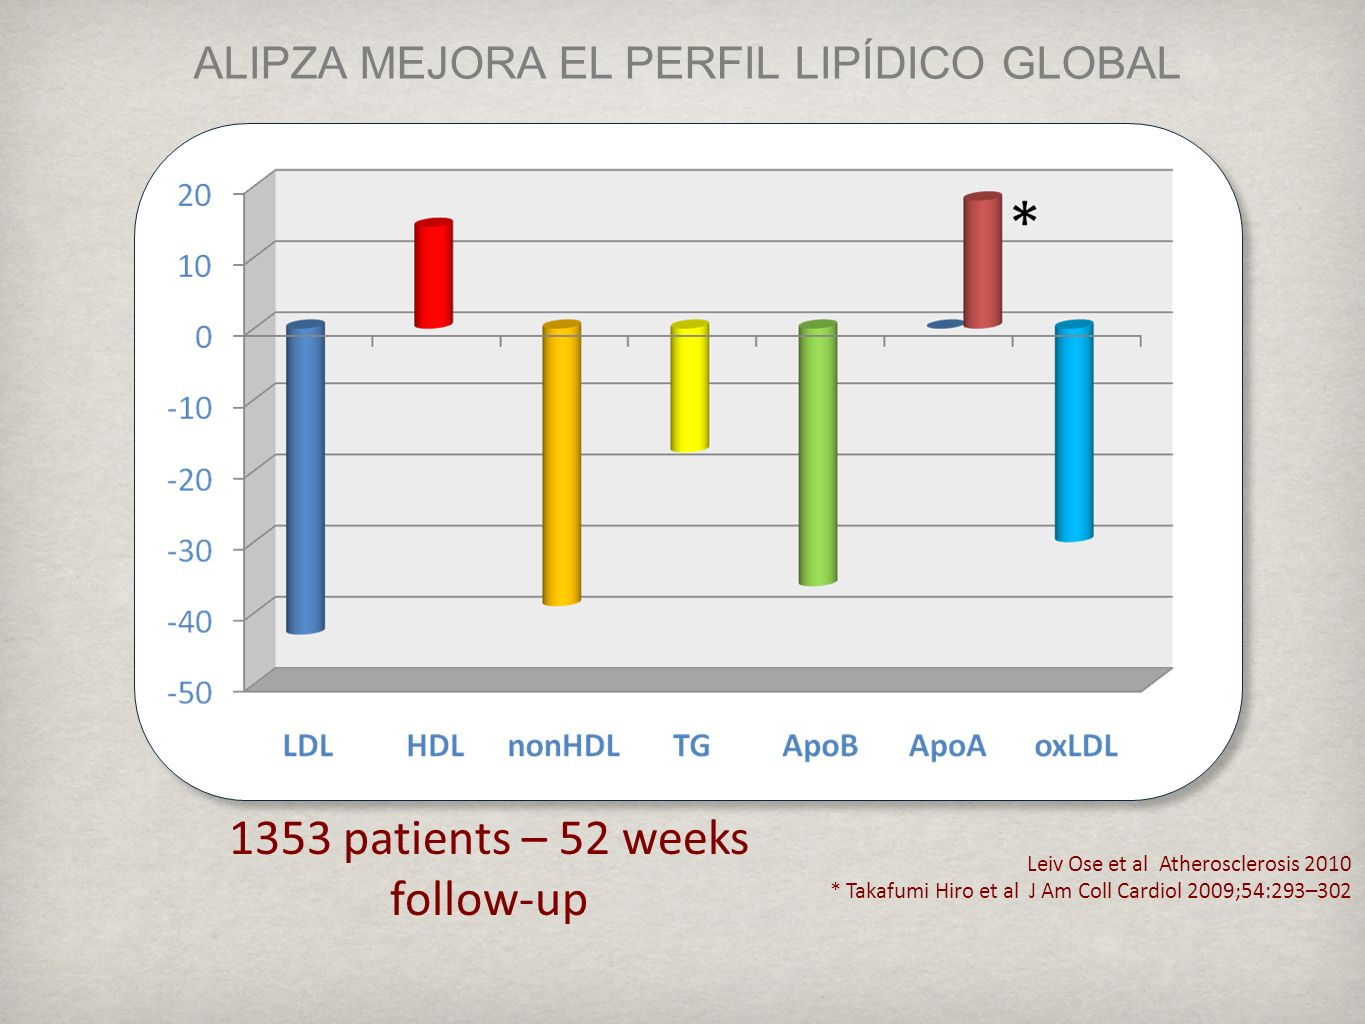 Leiv Ose et al Atherosclerosis 2010 * Takafumi Hiro et al J Am Coll Cardiol 2009;54:293–302 ALIPZA MEJORA EL PERFIL LIPÍDICO GLOBAL 1353 patients – 52